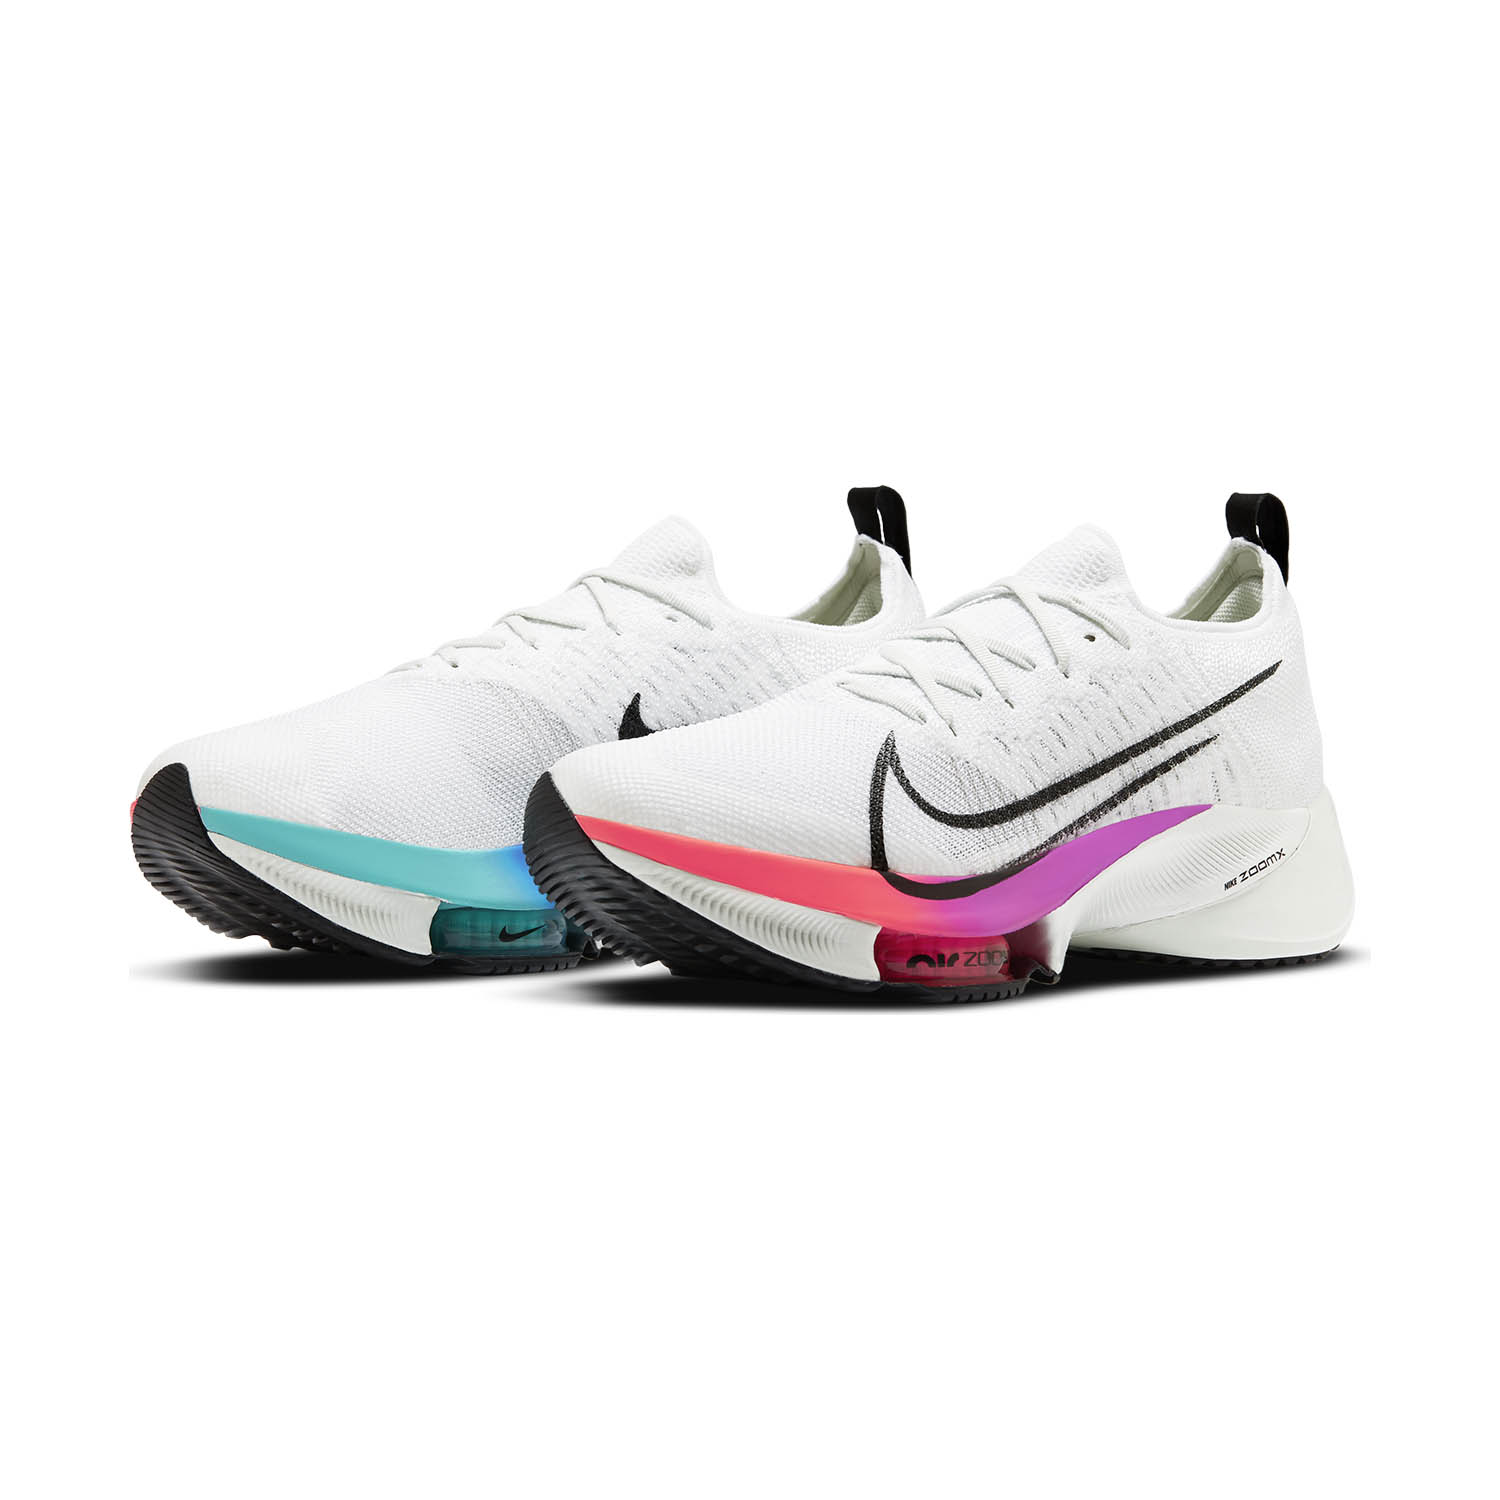 Nike Air Zoom Tempo Next% - White/Black/Hyper Violet/Flash Crimson